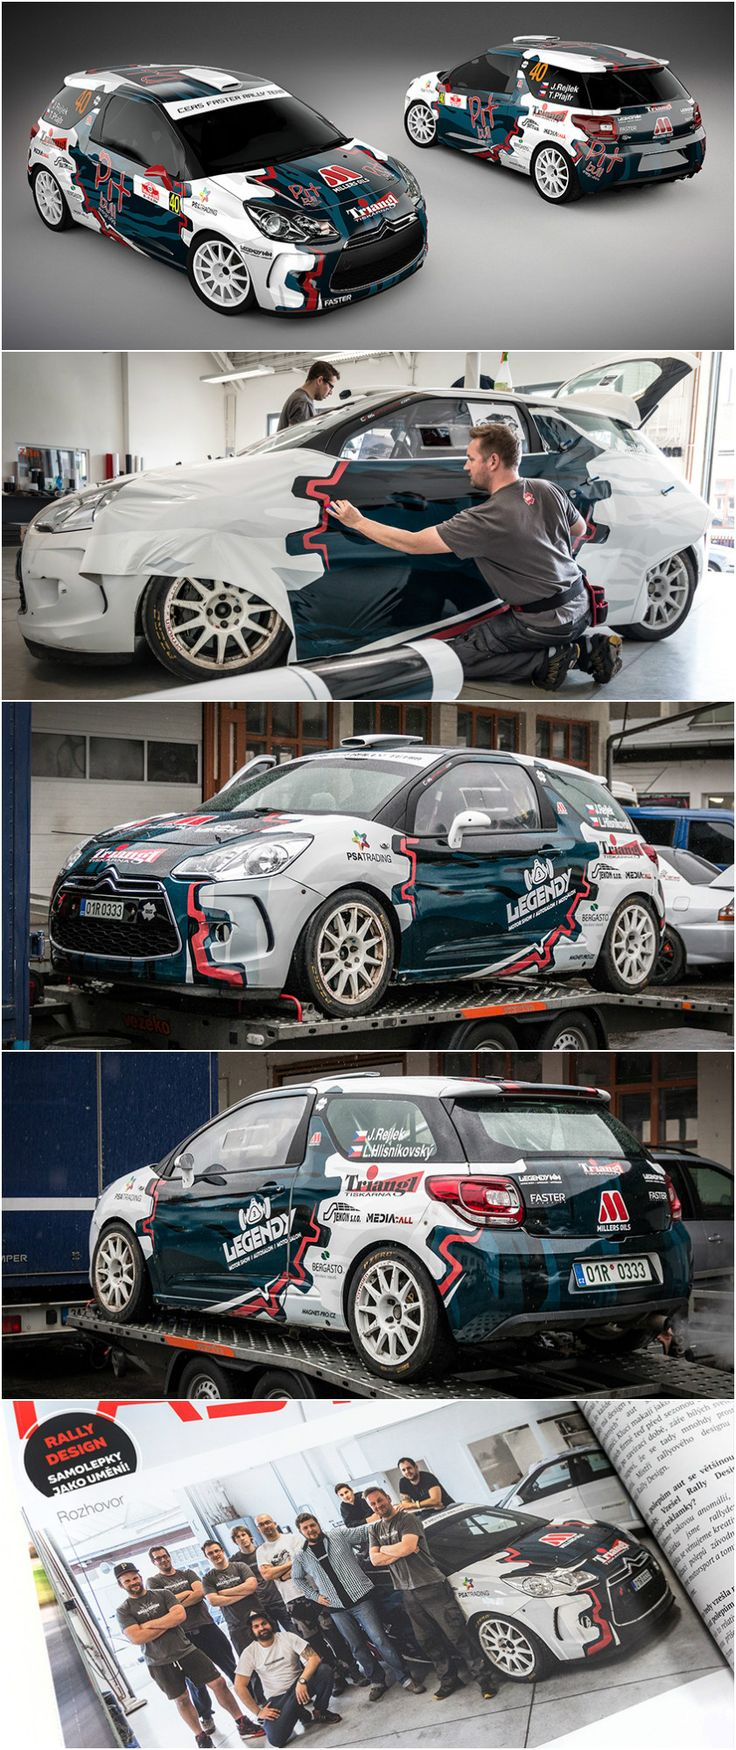 Design and wrap of Citroen DS3 for CERS Faster Rally Team, which is competing with Jakub Rejlek and Libor Hlisnikovský. Jakub Rejlek is also a editor in chief in Faster Magazine, he wrote article about our company.